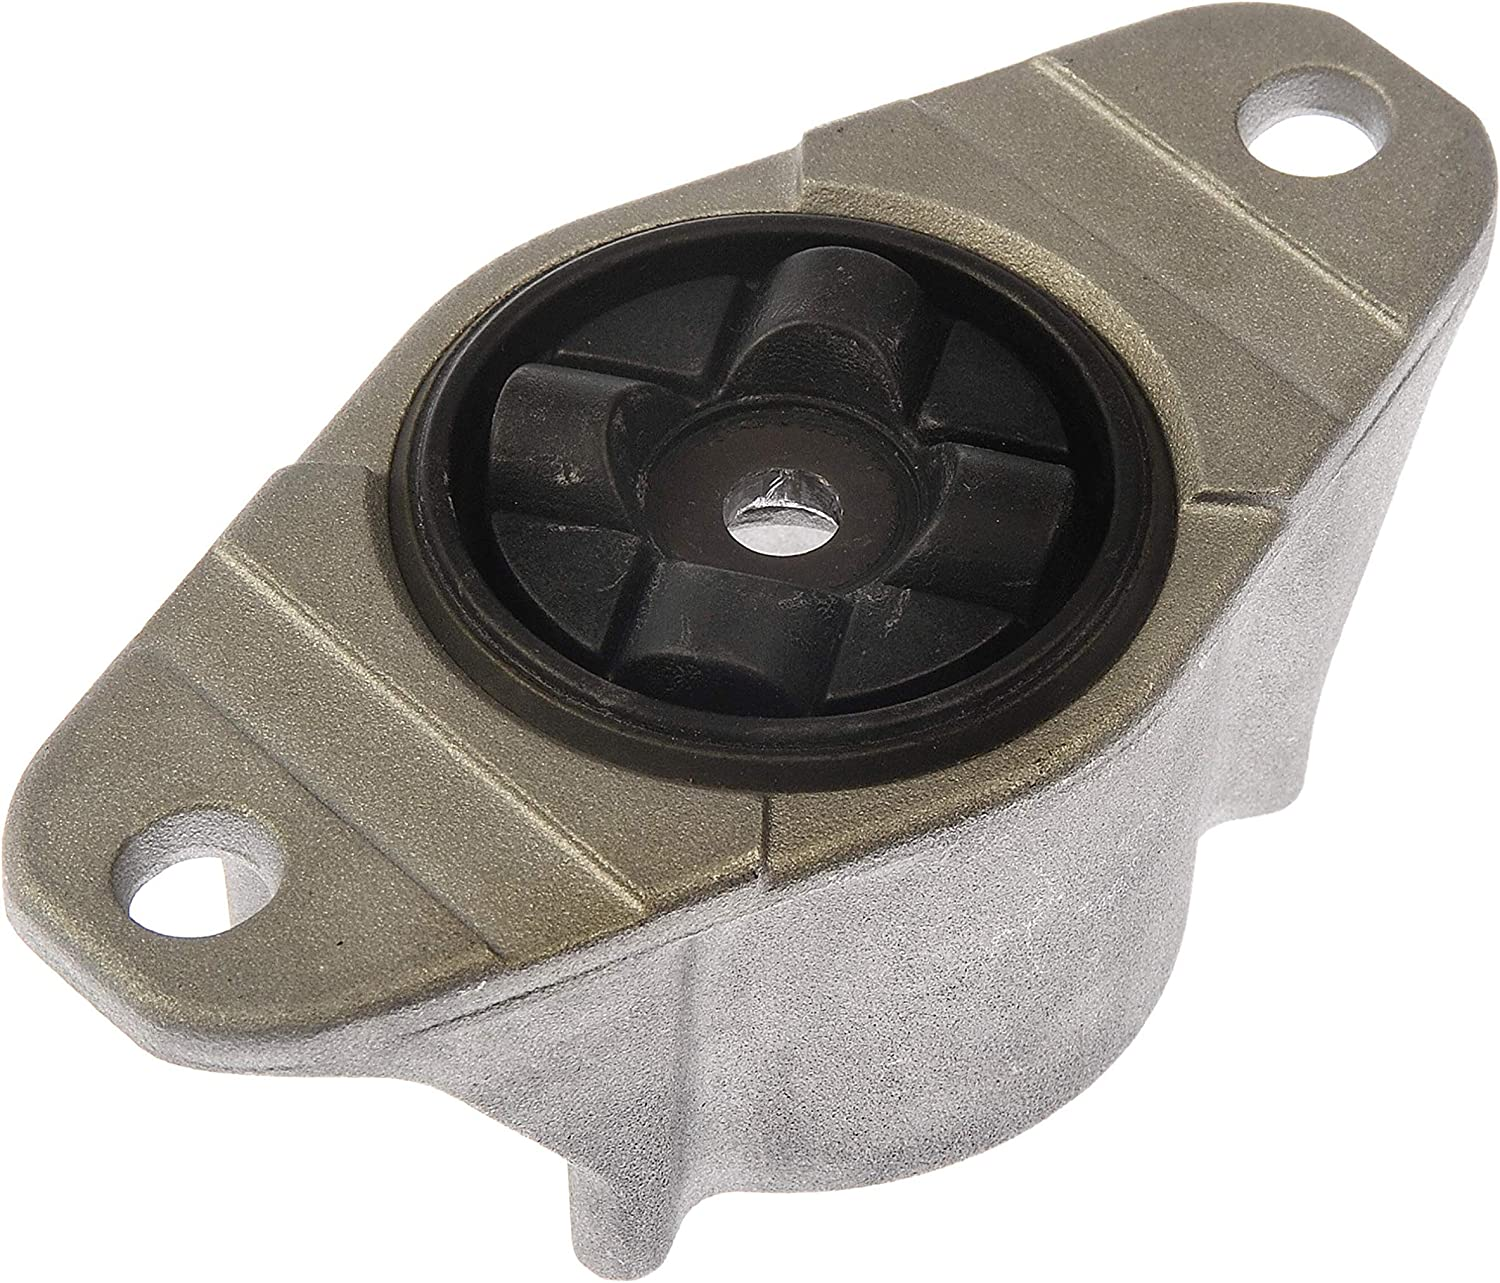 Dorman 924-412 Max 42% OFF Shock Our shop OFFers the best service Mount for Ford Mazda Select Lincoln Mod